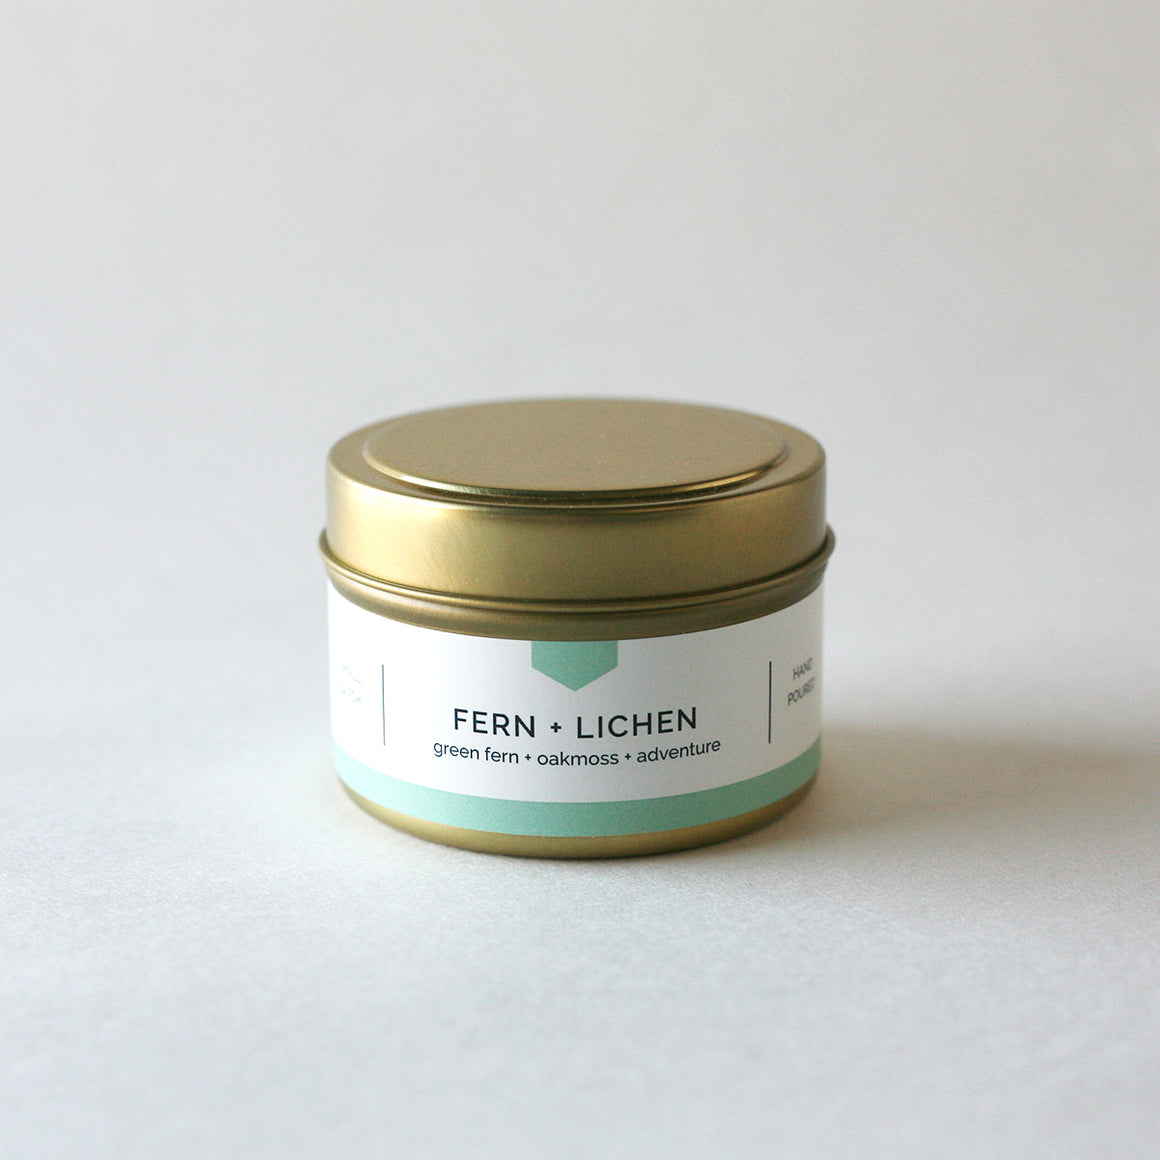 FERN + LICHEN 4 oz Travel Tin Soy Candle